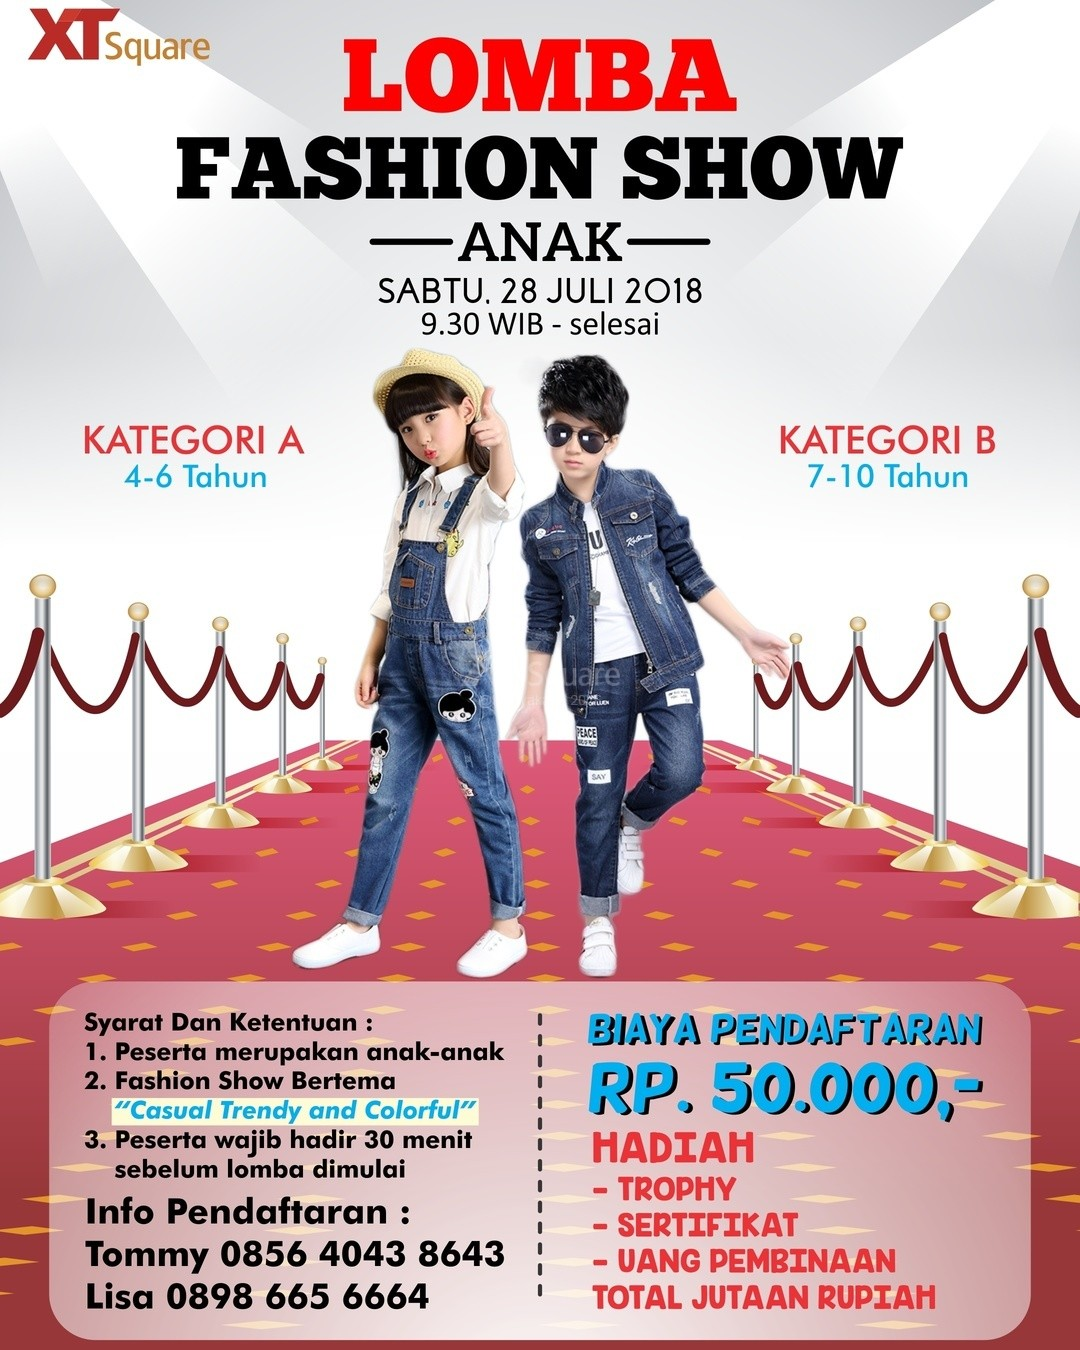 Lomba Fashion Show Anak XT Square 2018